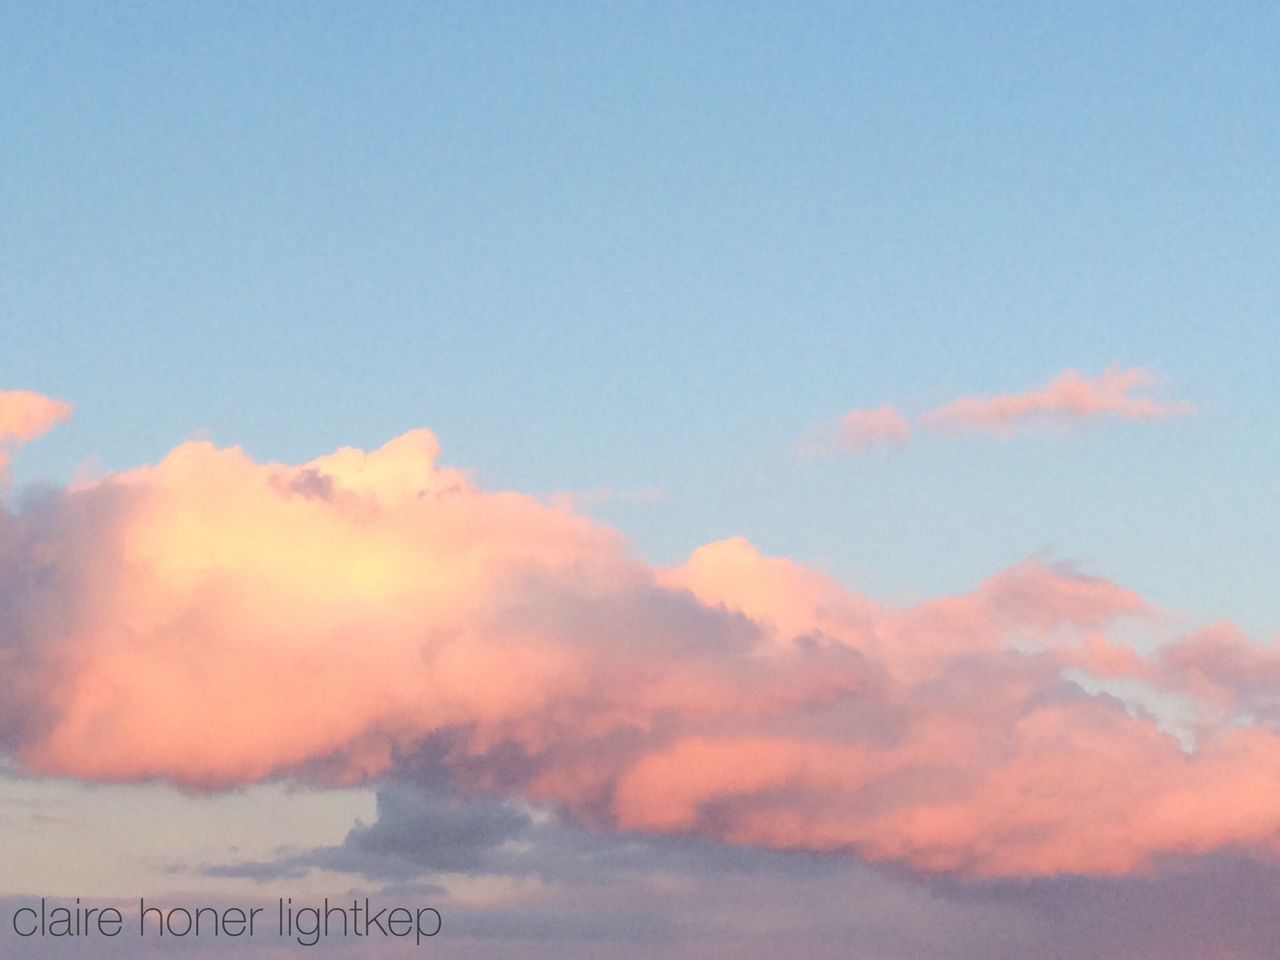 sky, nature, scenics, beauty in nature, no people, cloud - sky, tranquility, sky only, outdoors, low angle view, sunset, day